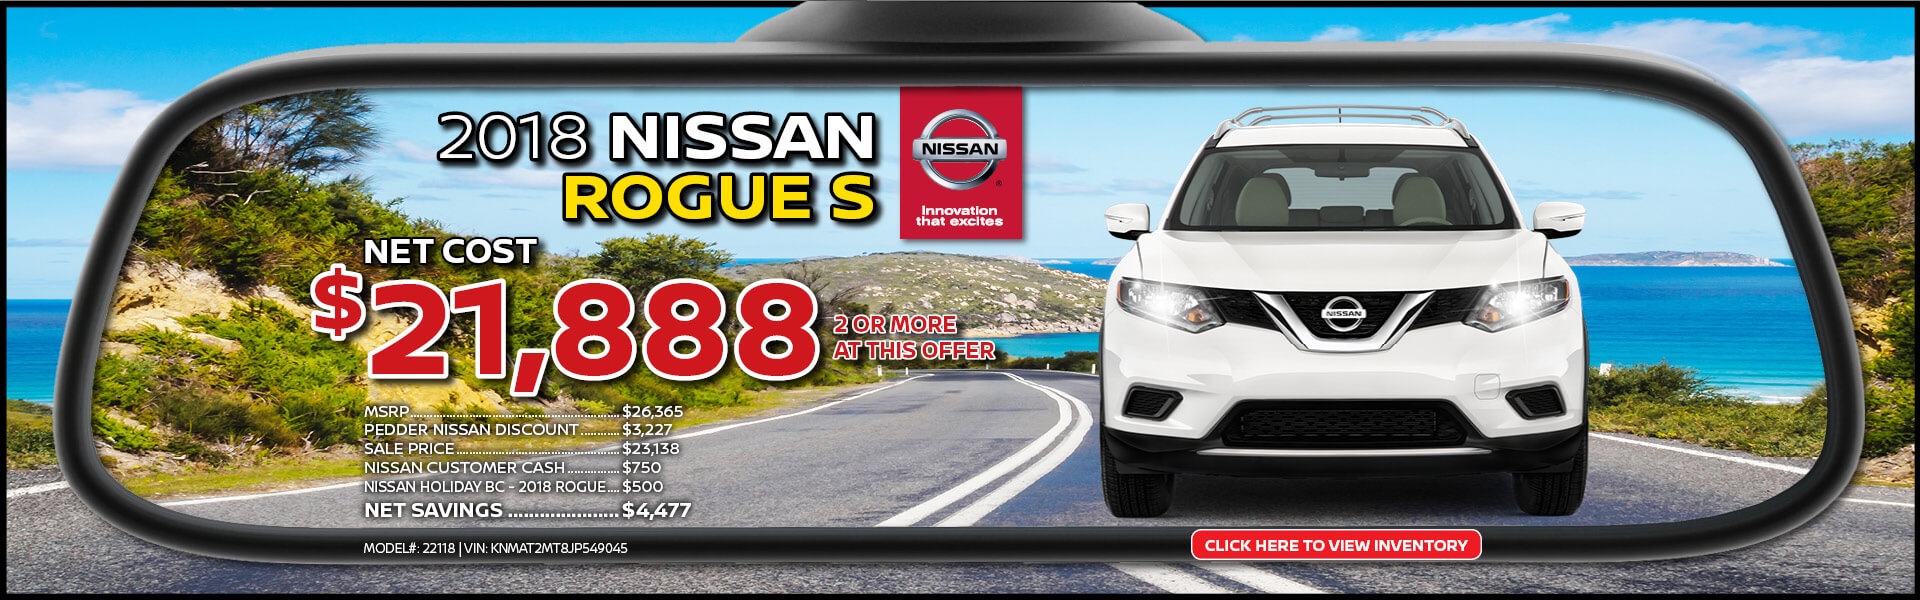 Nissan Rogue $21,888 Purchase